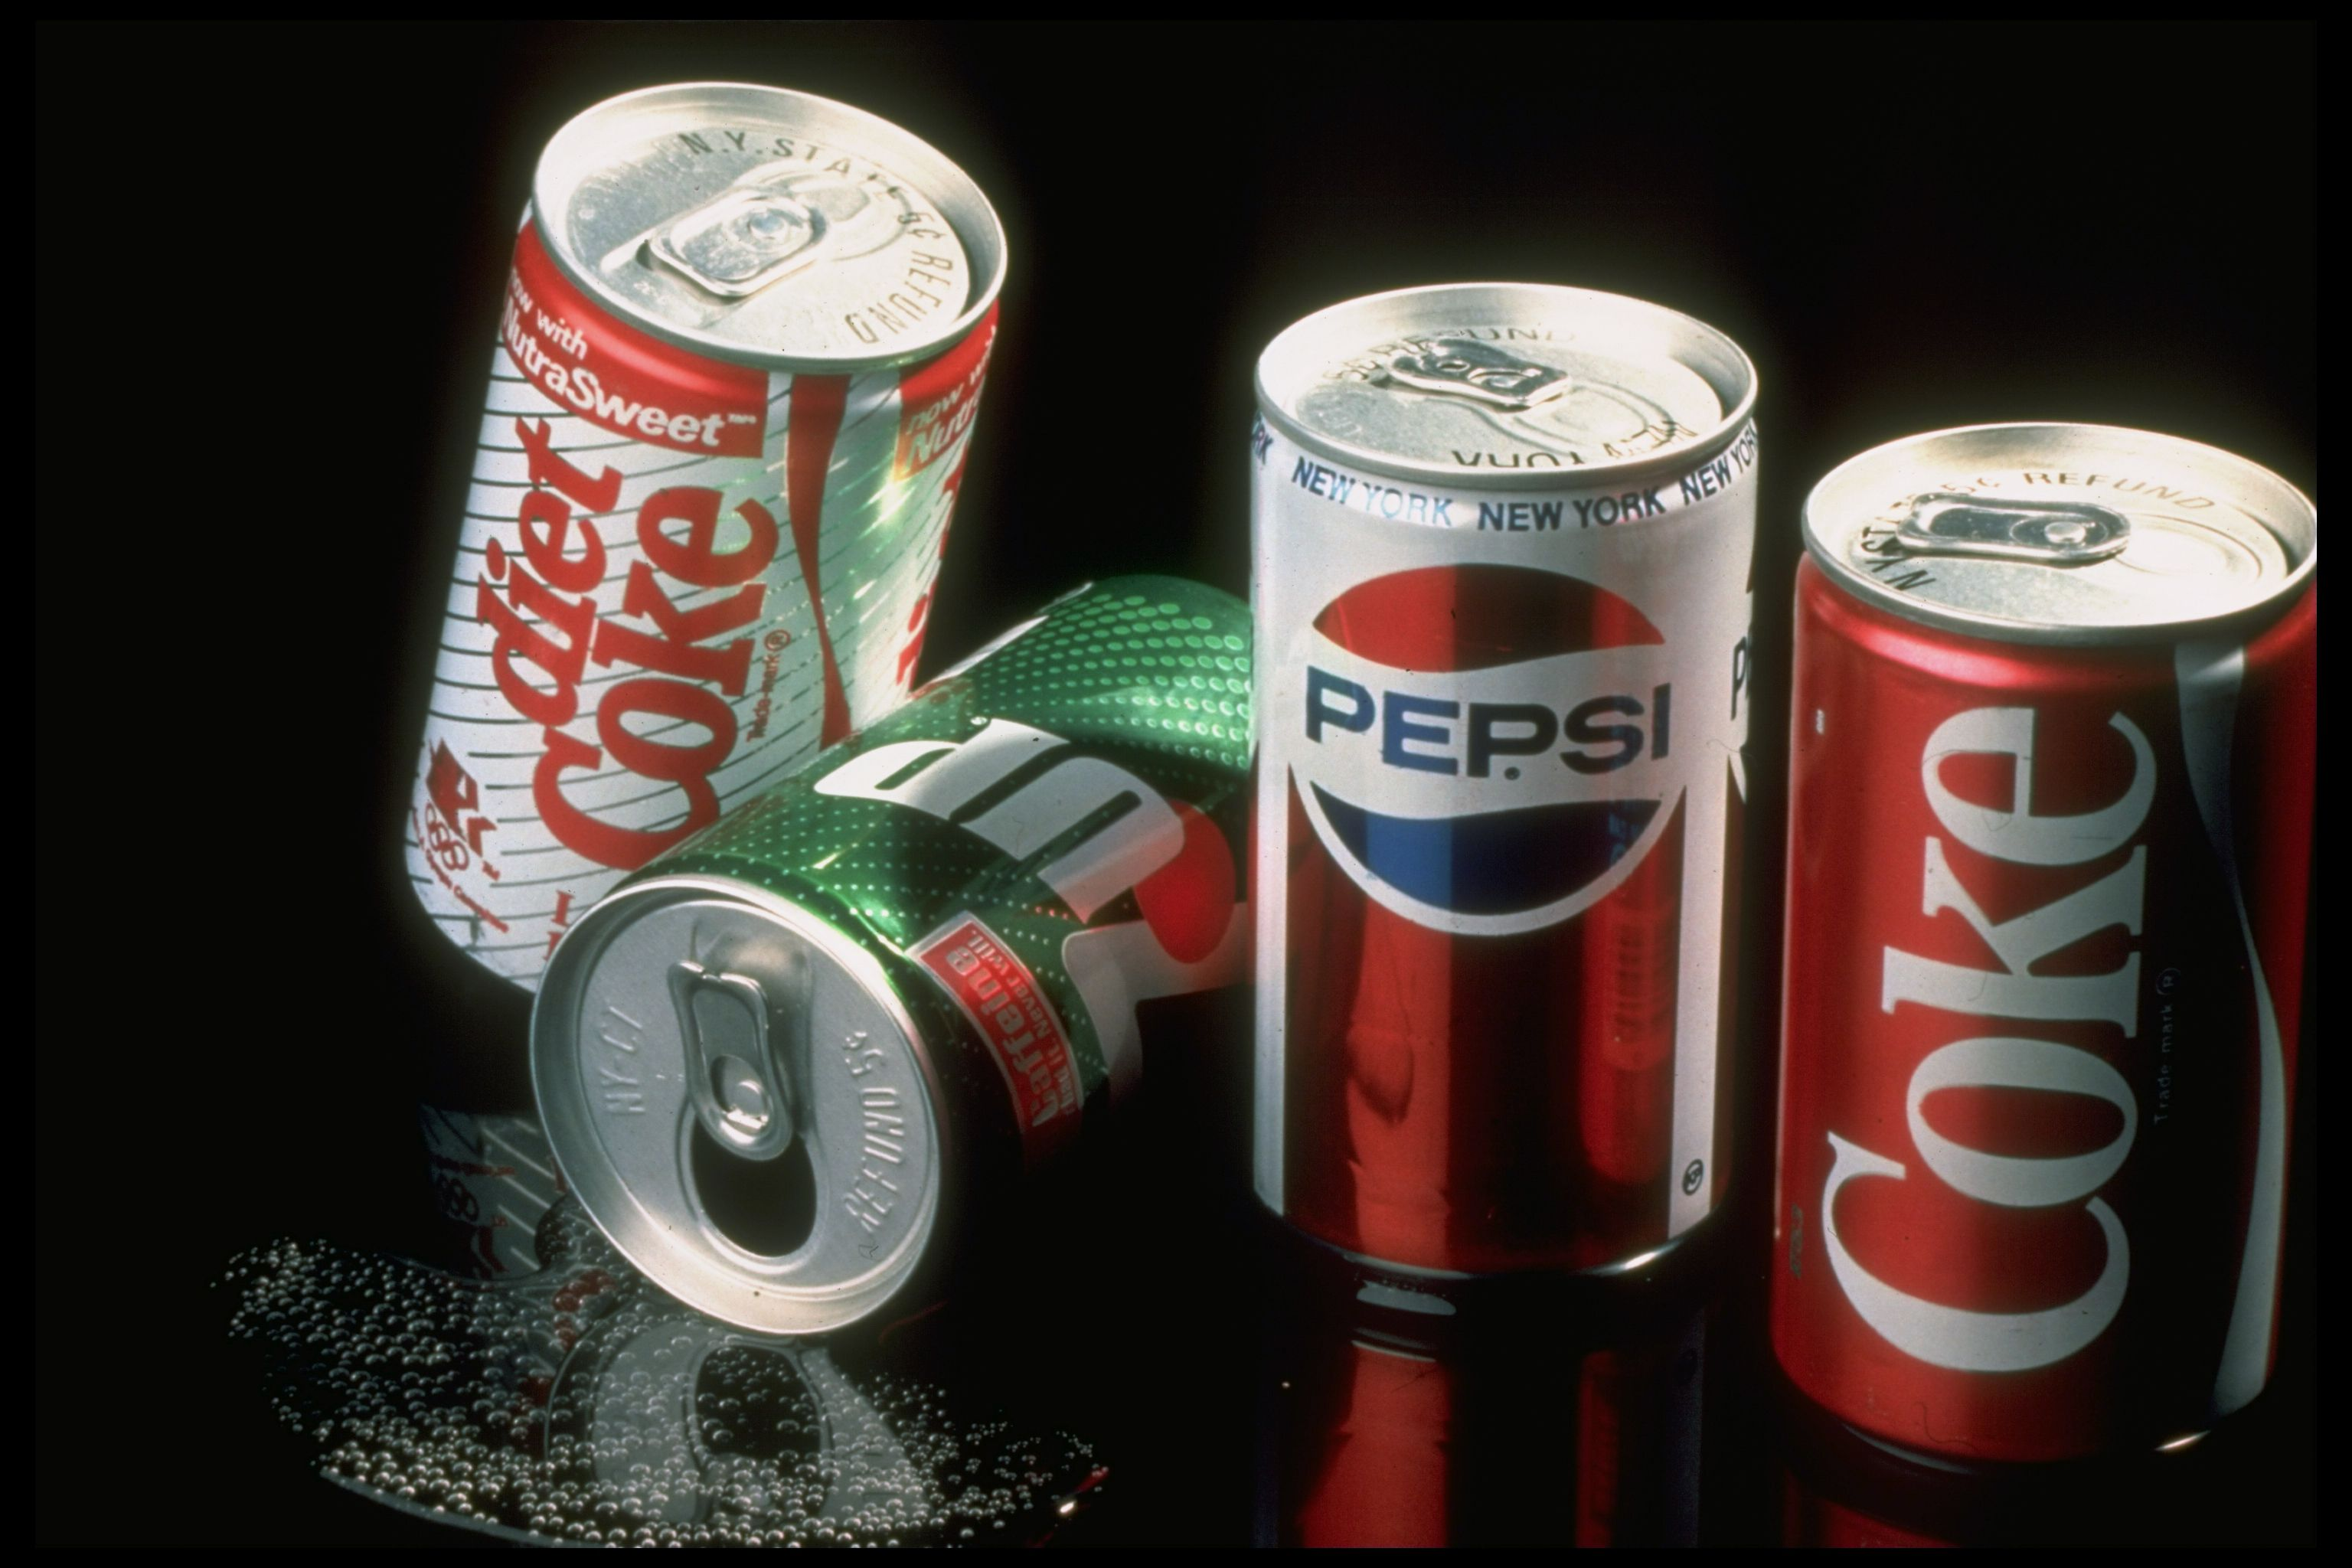 does diet soda make you hungry?